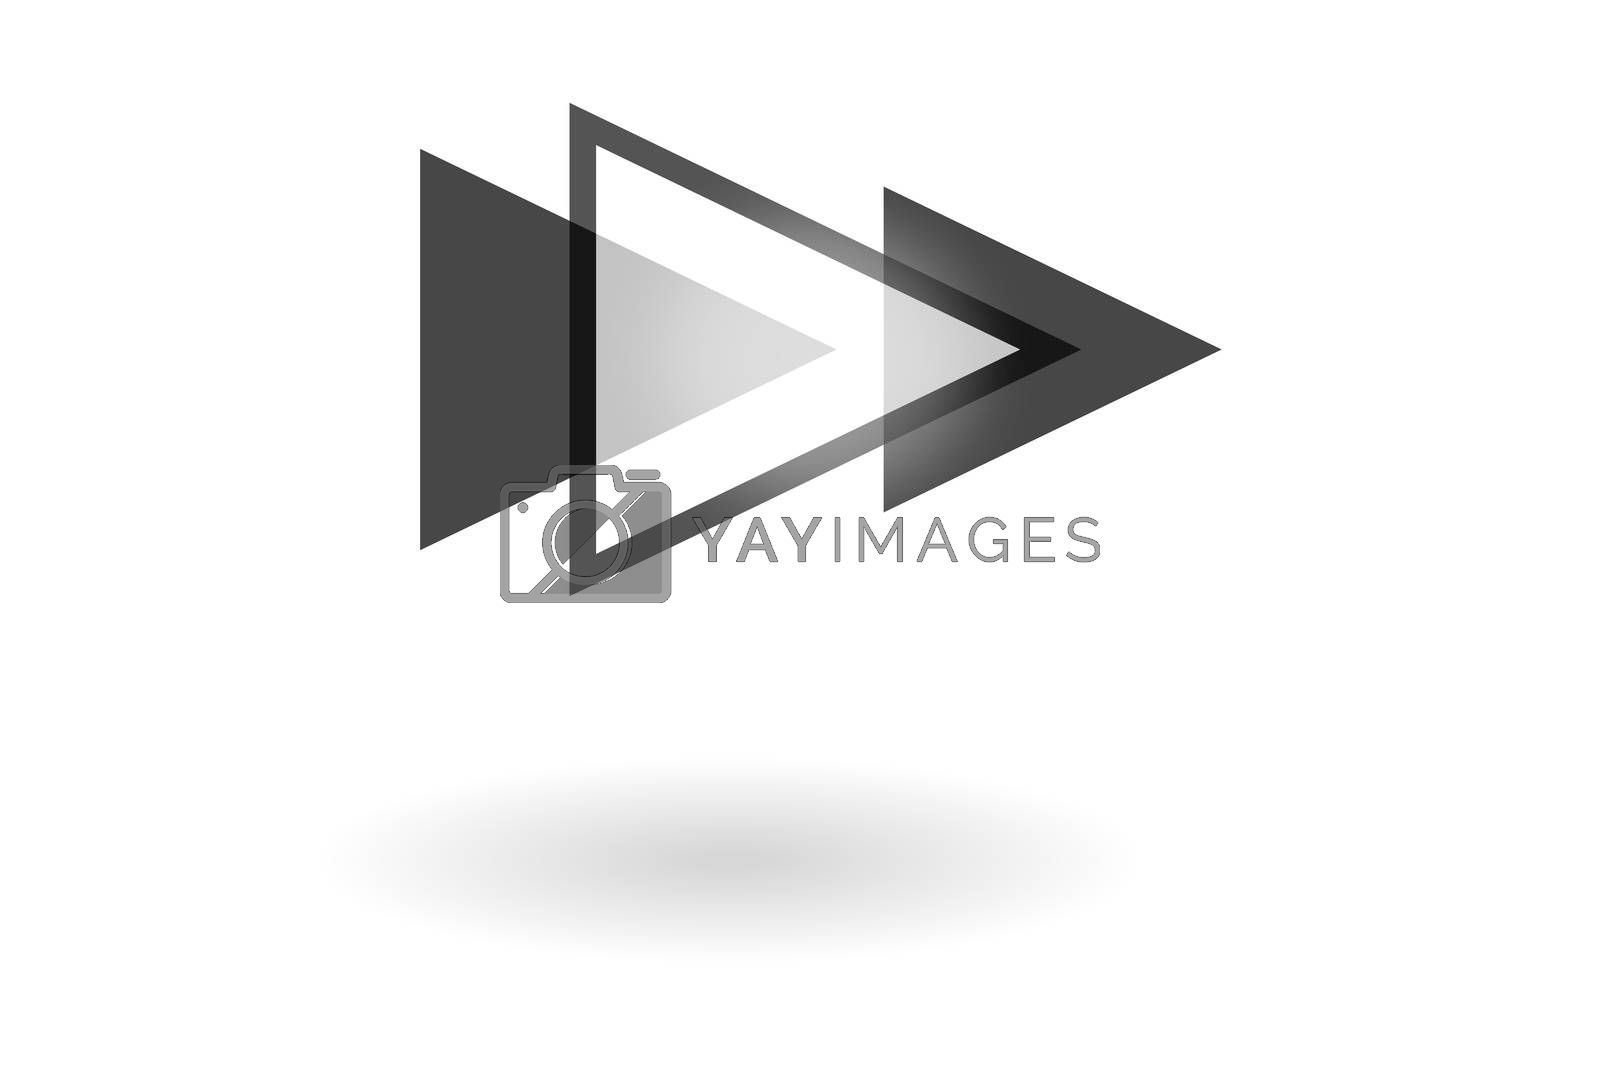 Royalty free image of Abstract geometric pattern, monochrome play icon with triangle overlapping on white background by mouu007